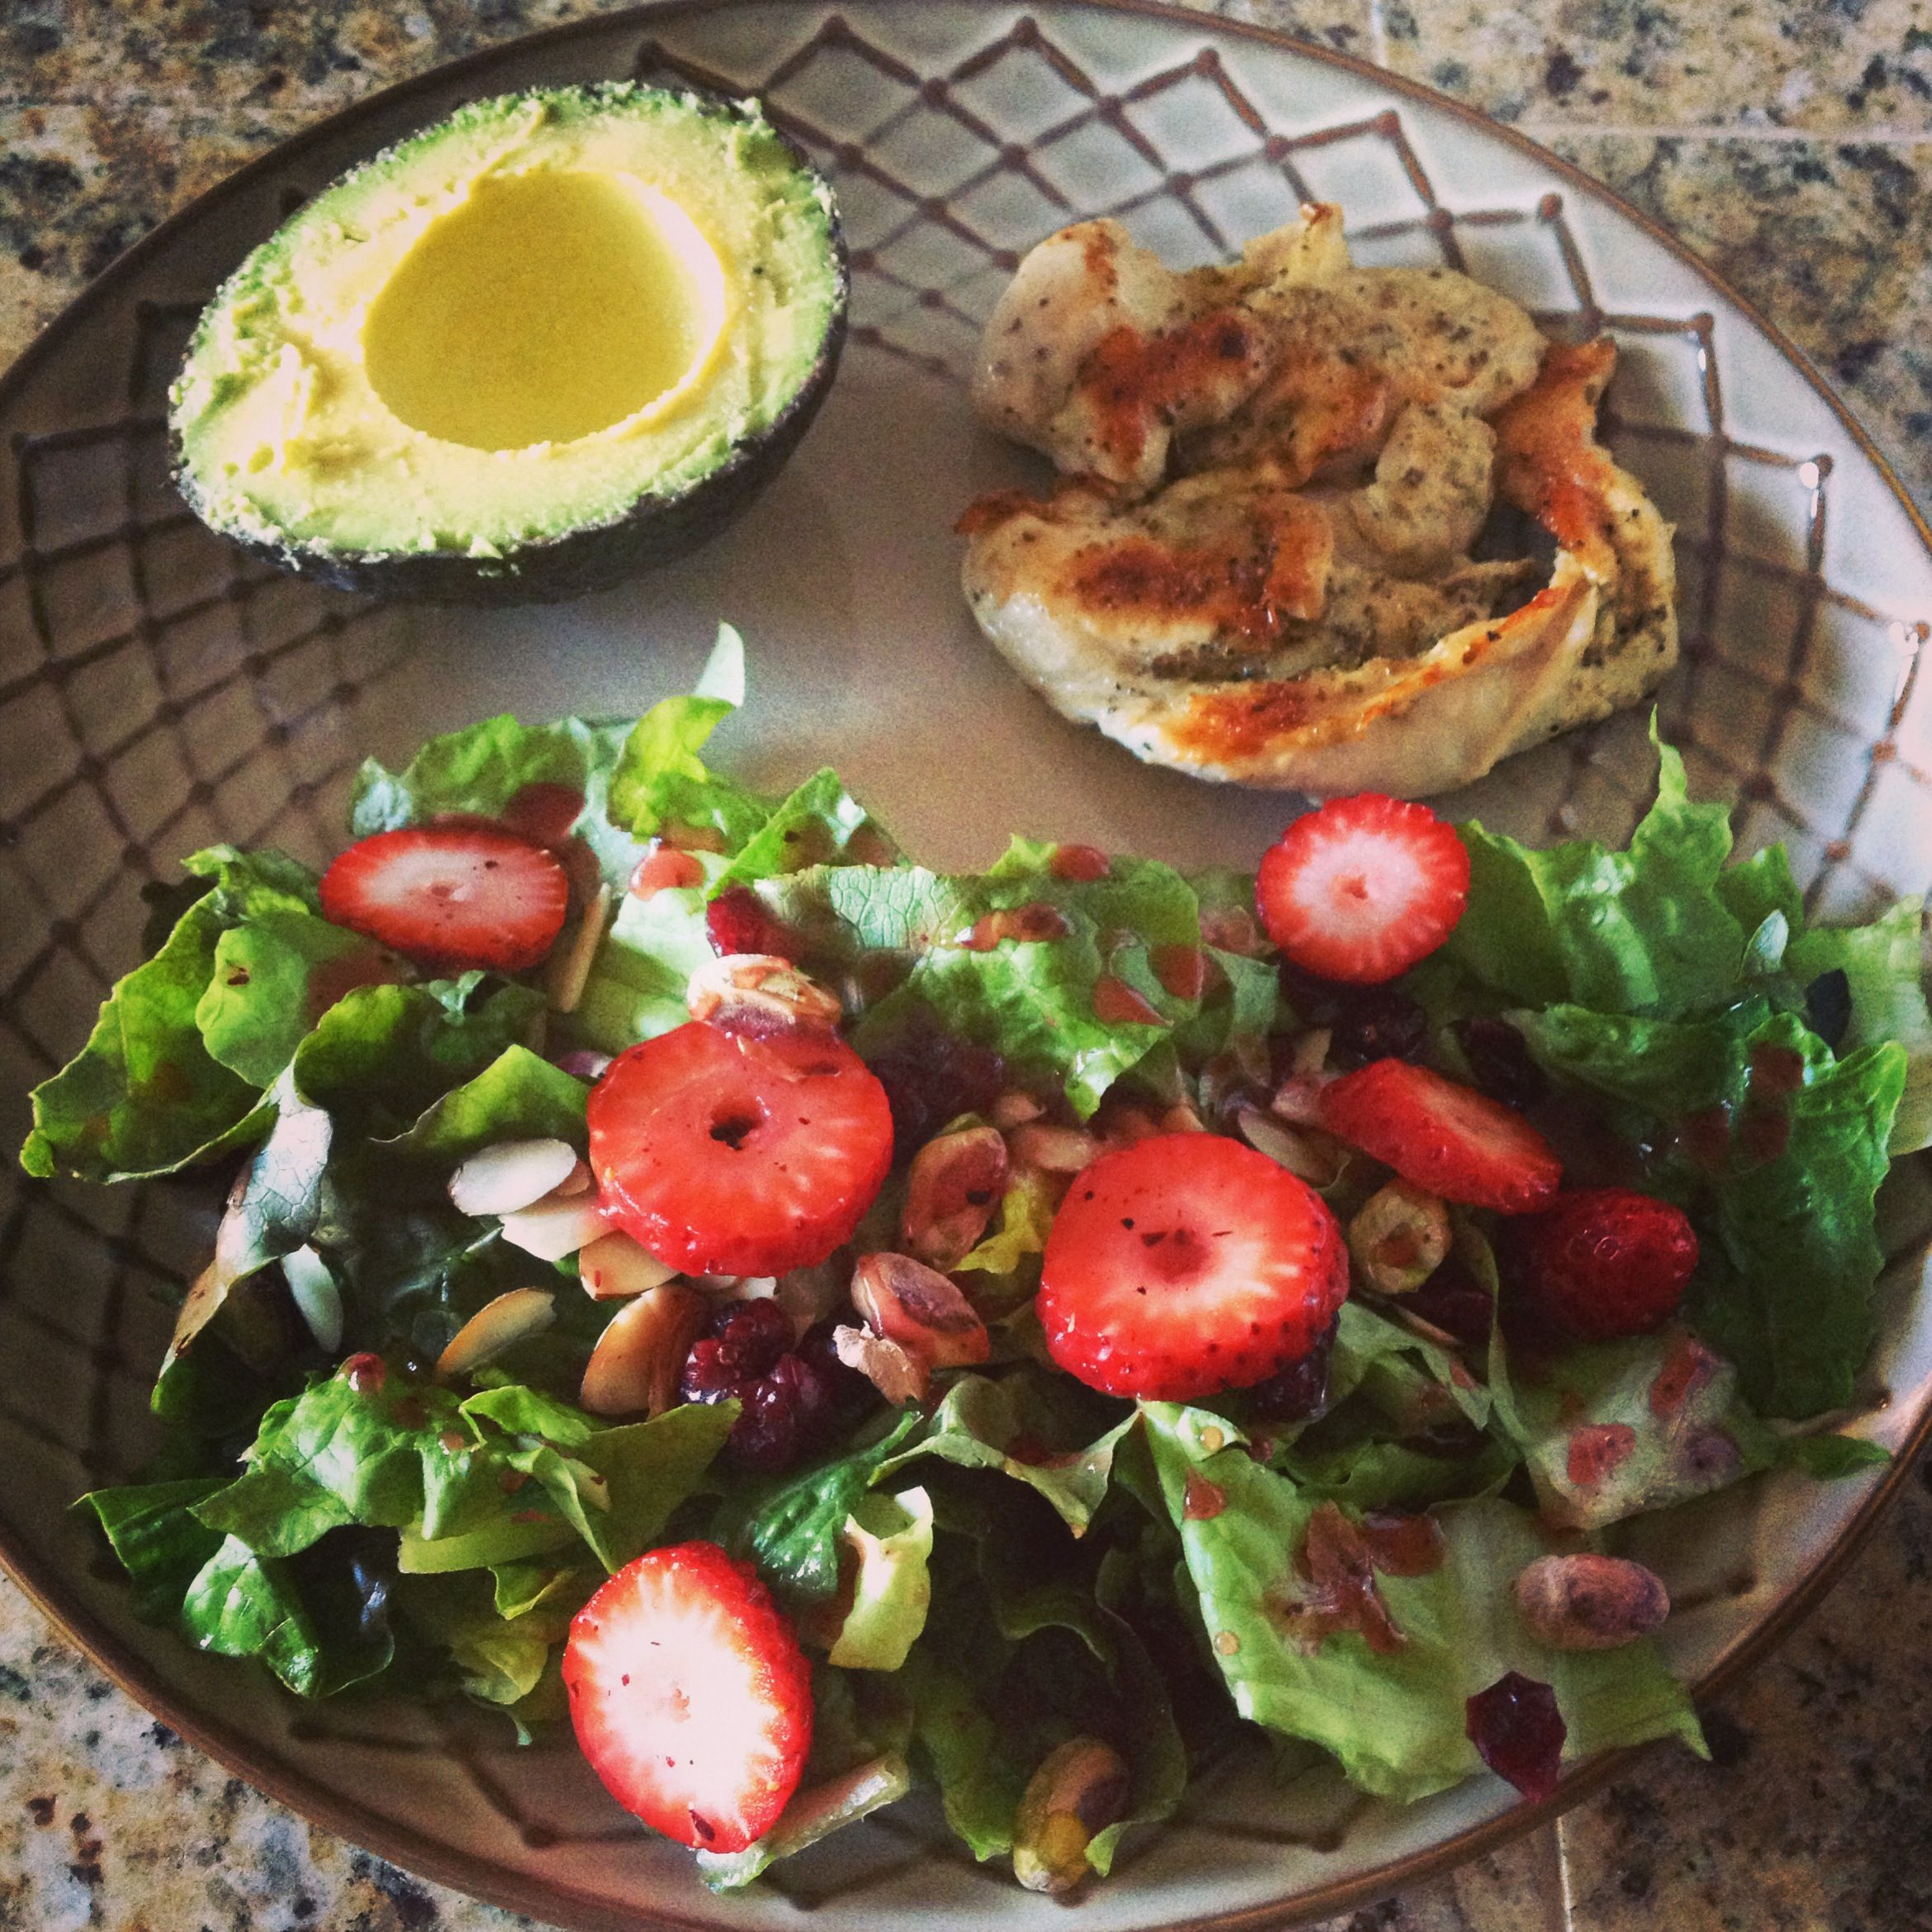 Raspberry And Walnut Kitchen: Grilled Chicken With Cavenders All Purpose Greek Seasoning